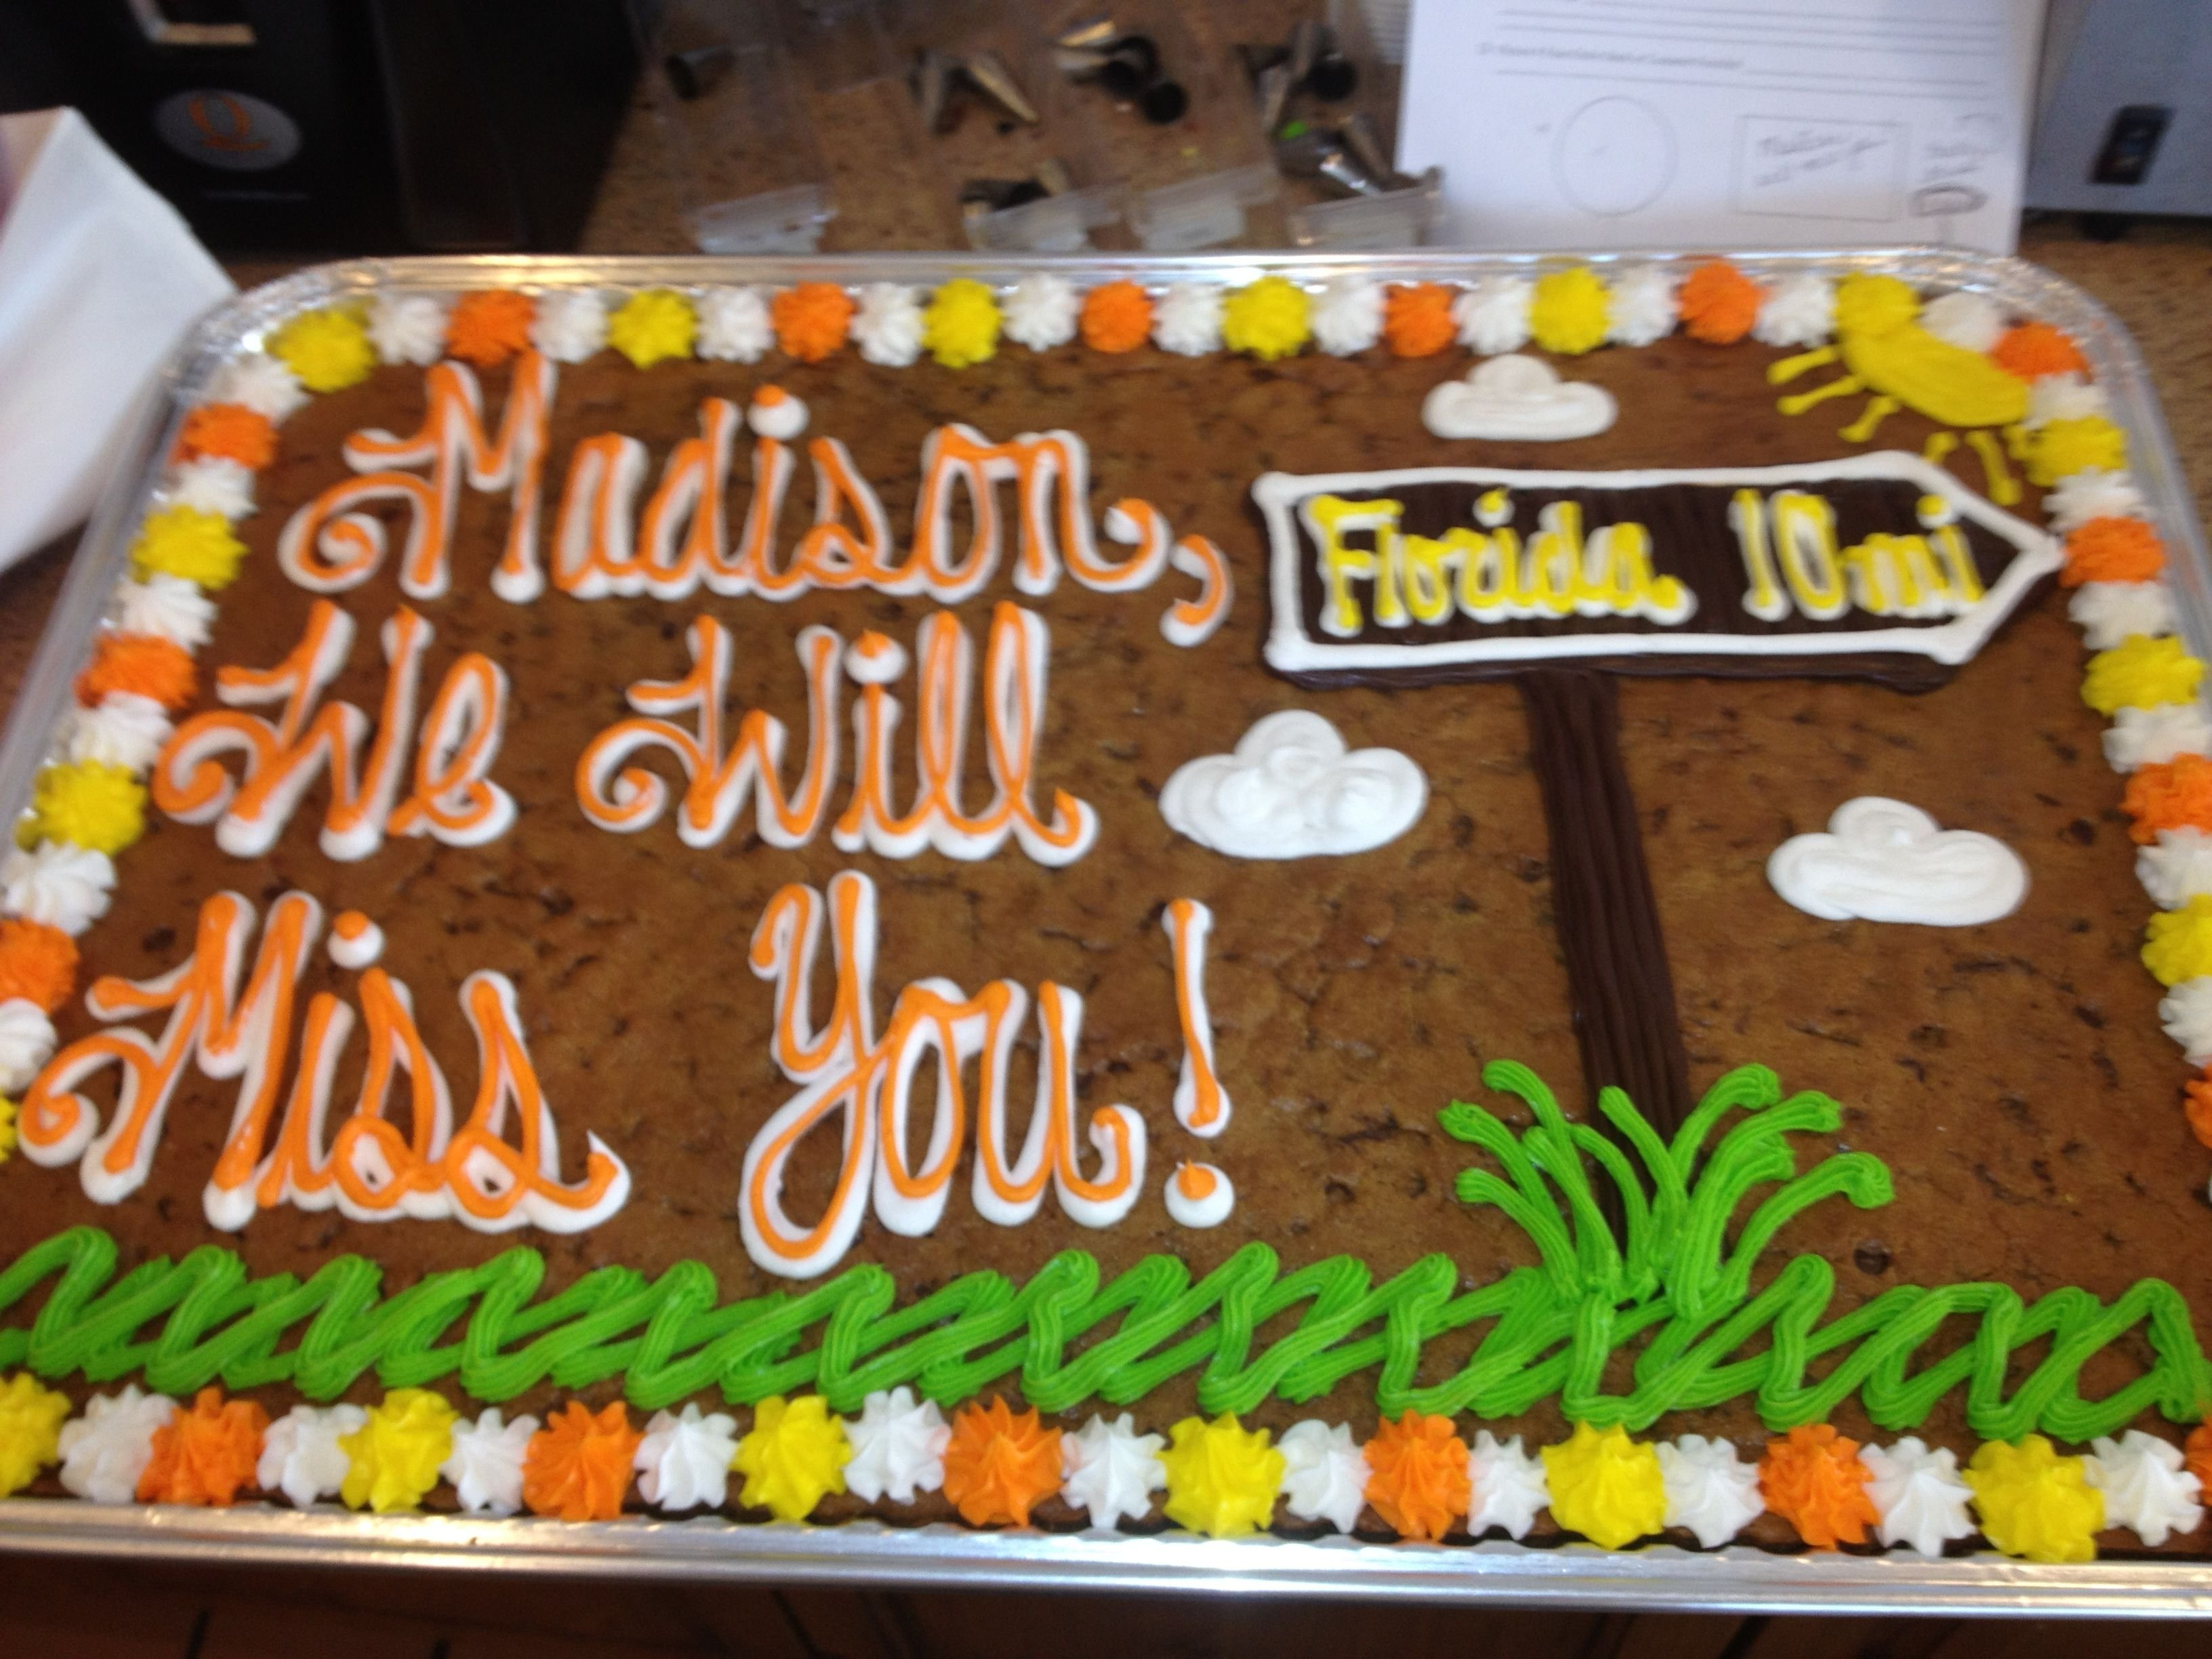 10 Ideal Going Away To College Party Ideas going away to college cake my cakes 3 pinterest college cake 2020